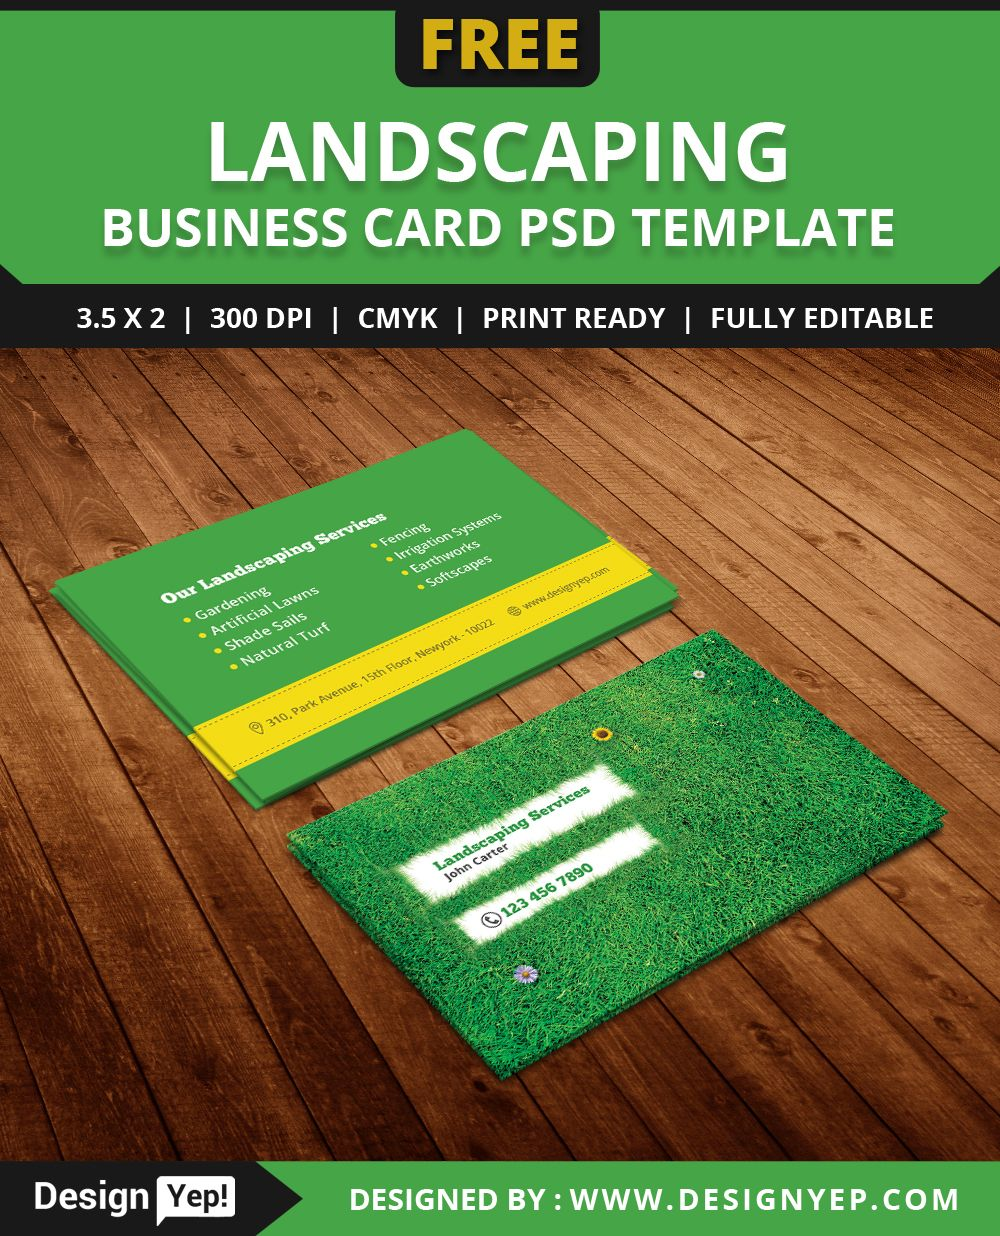 Free landscaping business card template psd free business card free landscaping business card template psd flashek Gallery